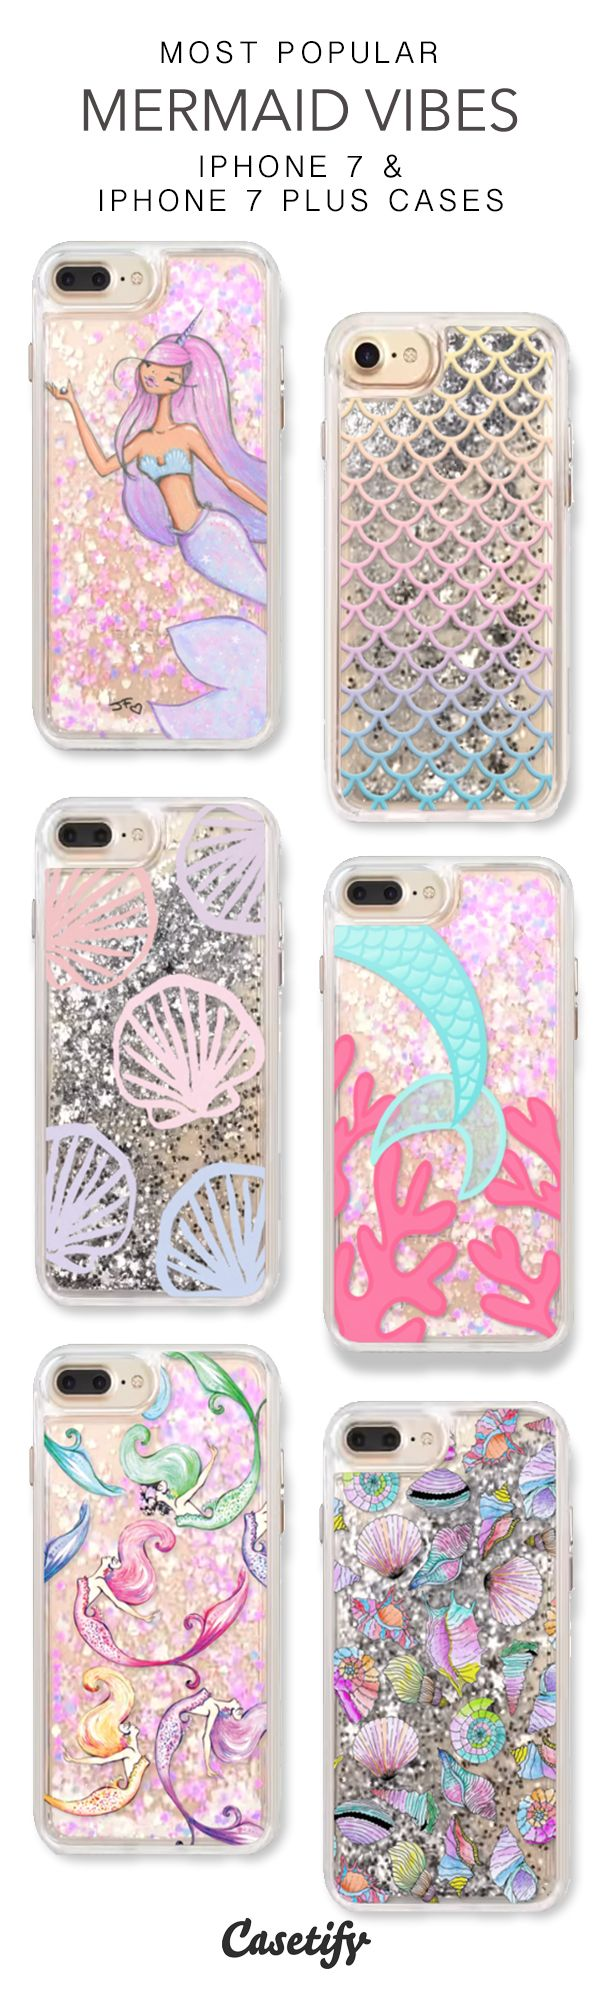 Most Popular Mermaid Vibes iPhone 7 Cases & iPhone 7 Plus Cases. More glitter iPhone case here > https://www.casetify.com/en_US/collections/iphone-7-glitter-cases#/